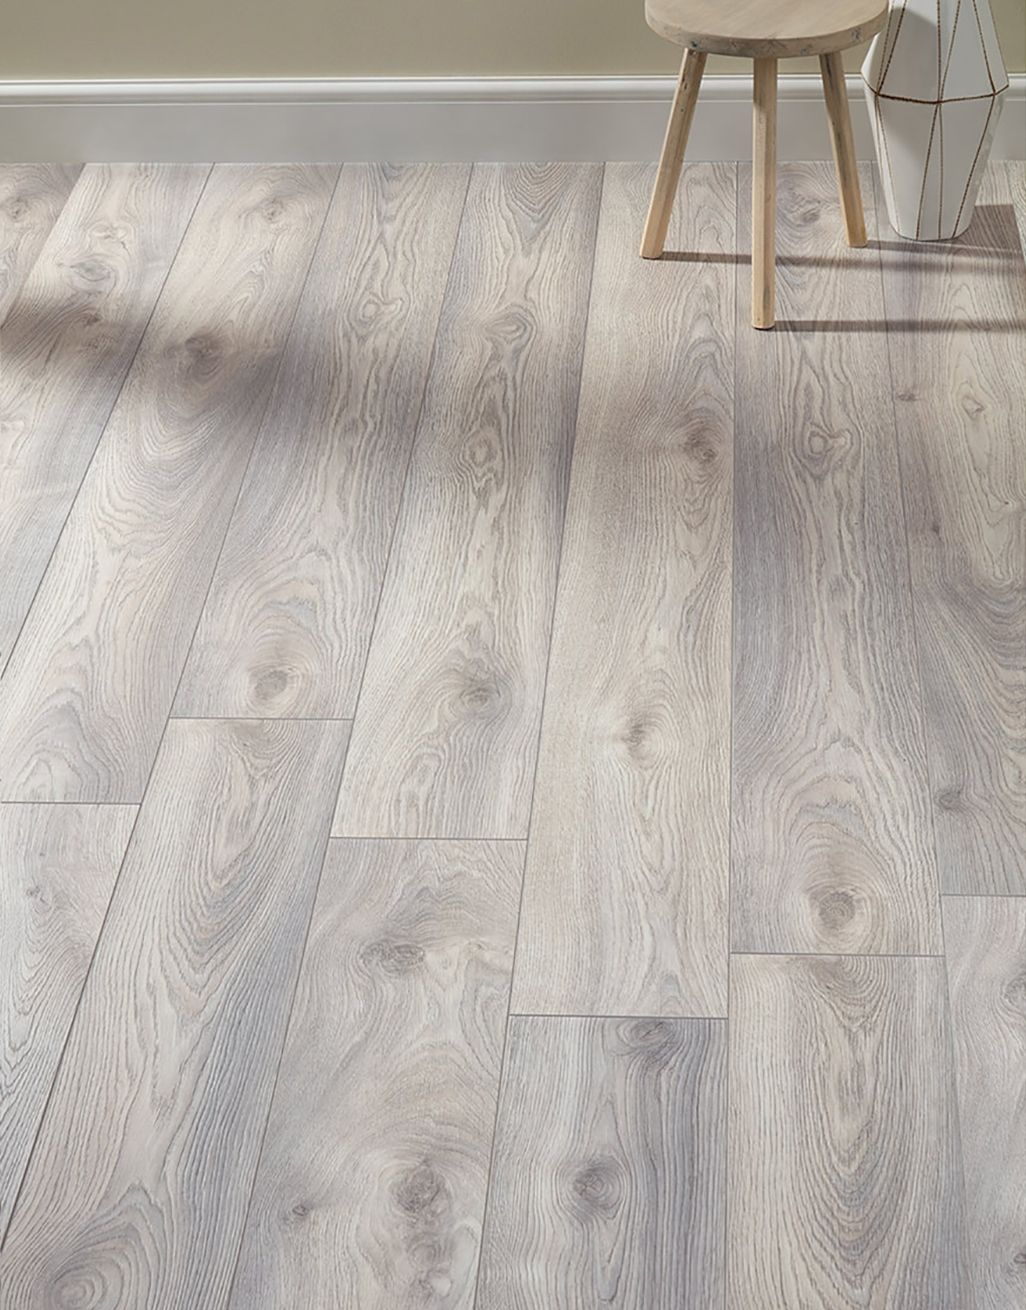 Supreme 12mm Long Board Macro Oak White Laminate Flooring In 2020 White Laminate Flooring Laminate Flooring Direct Wood Flooring